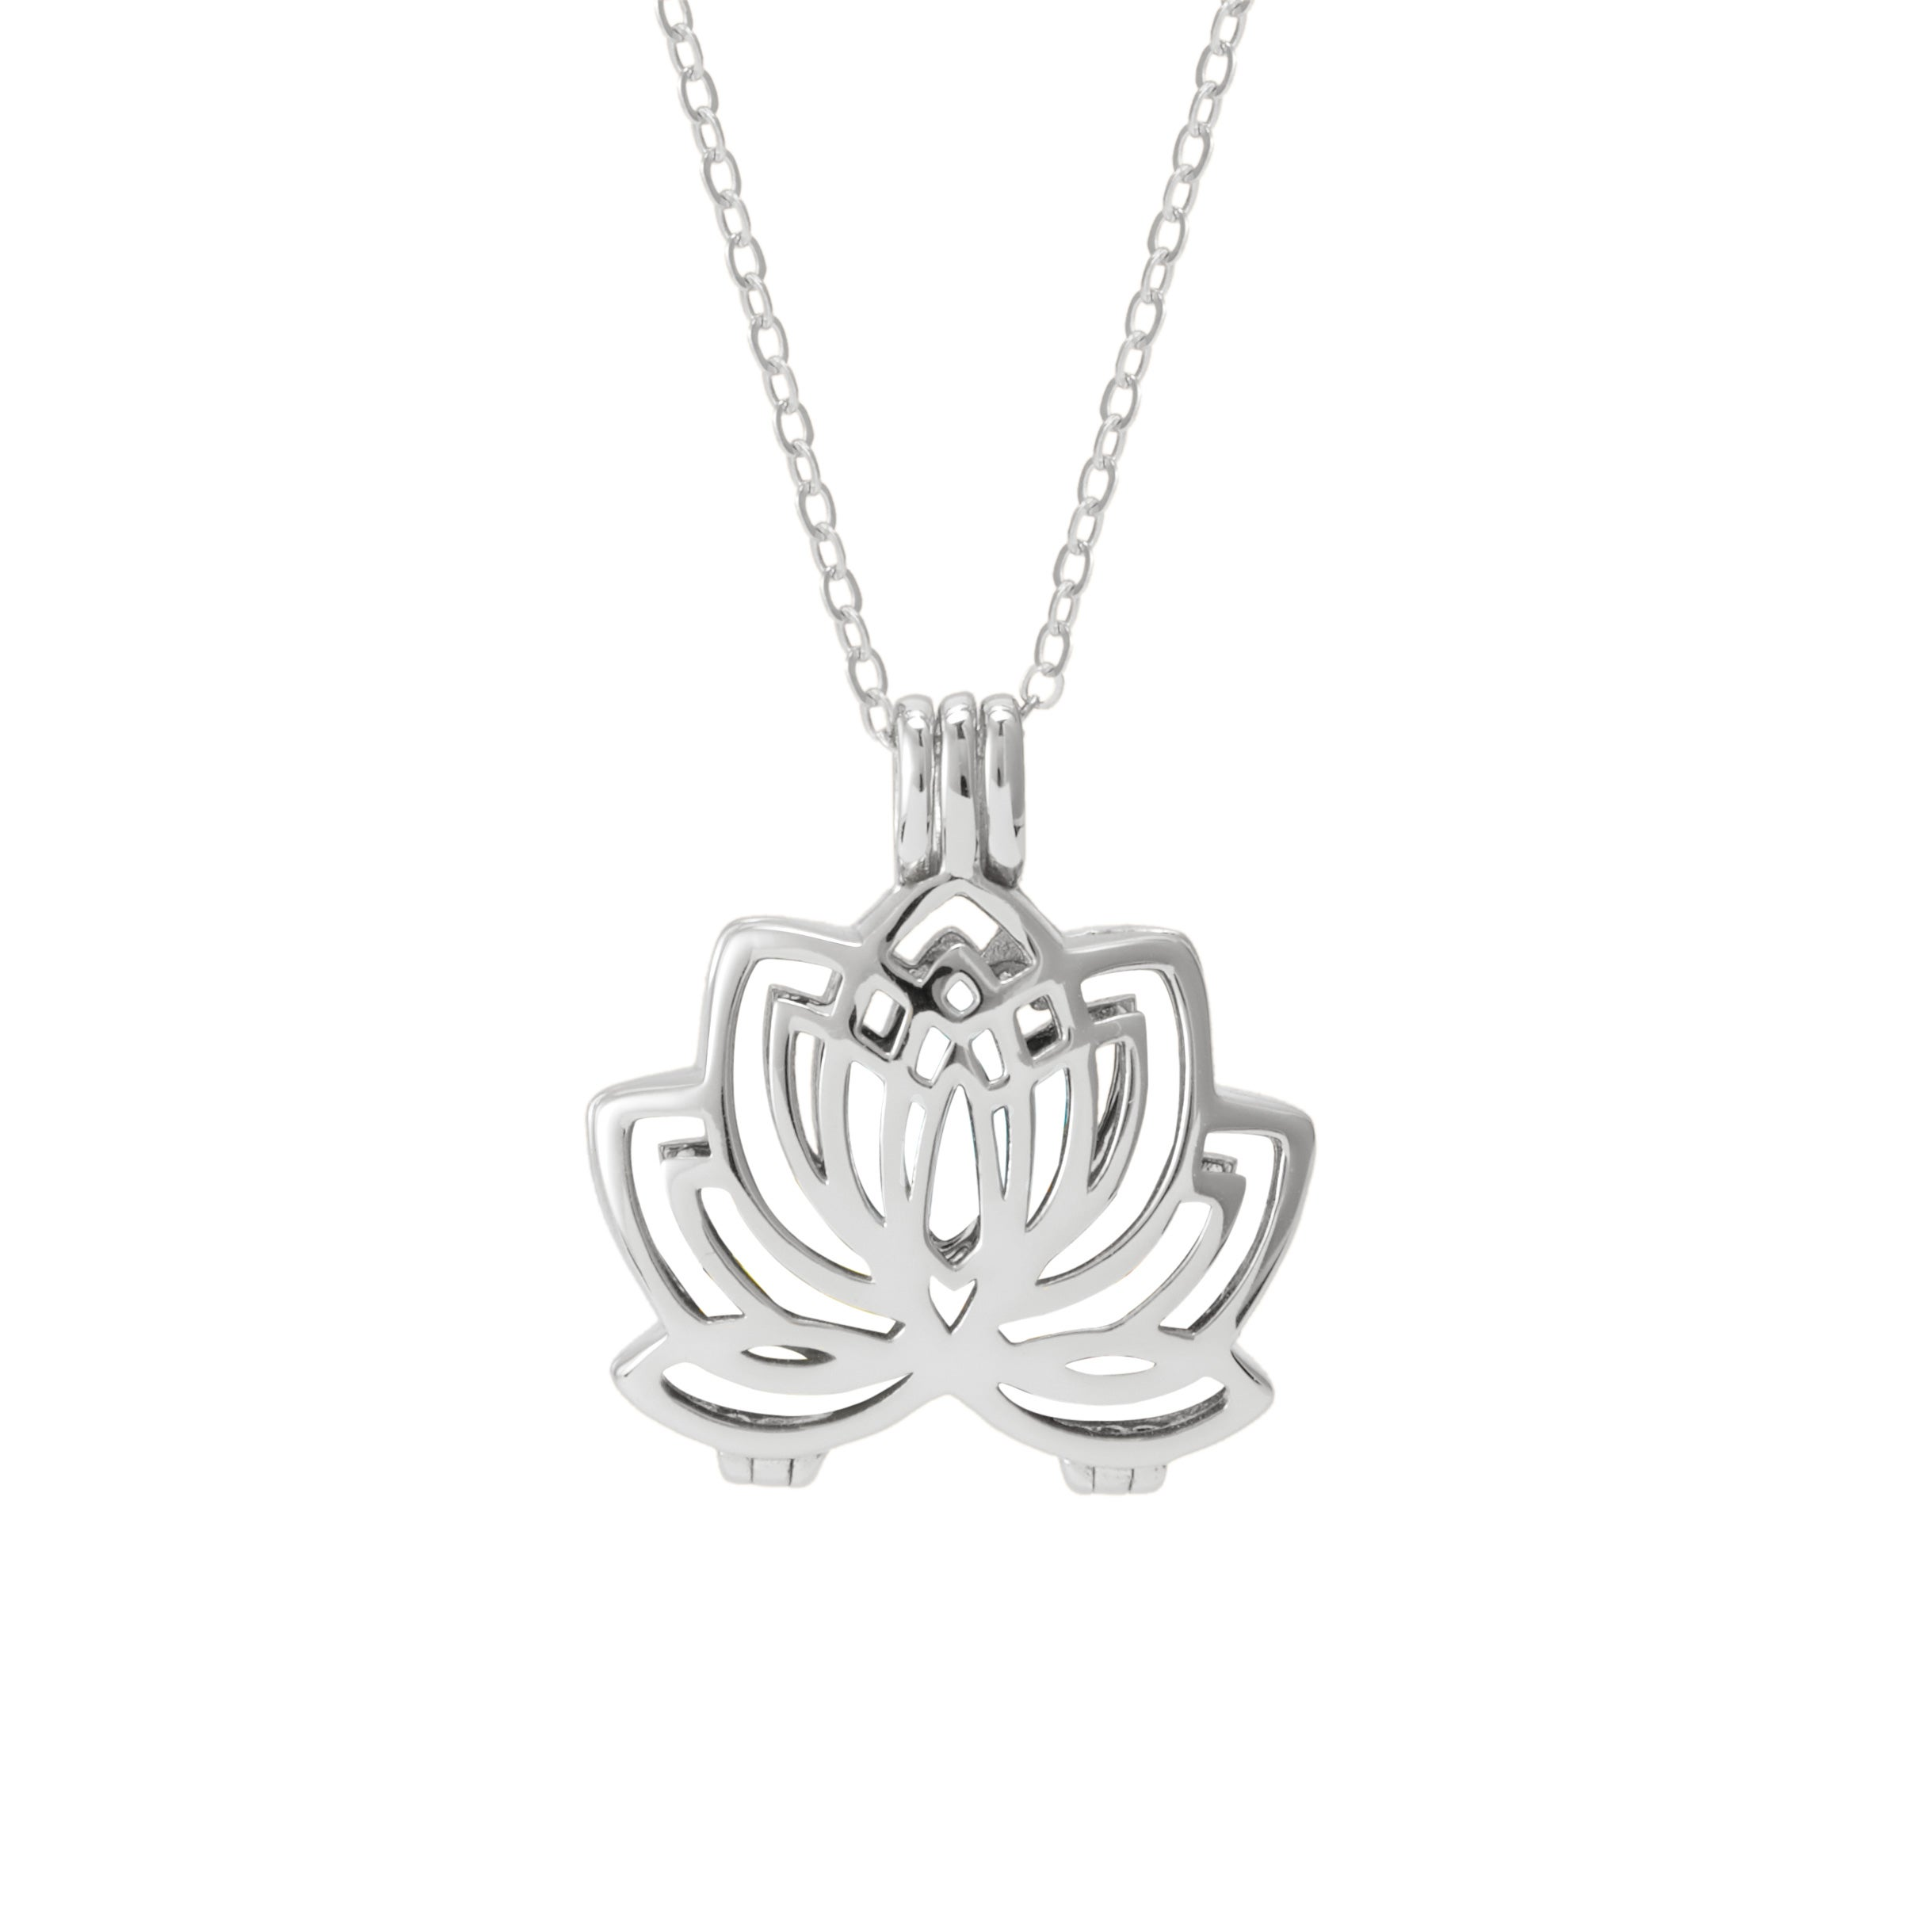 grace honor life of jewelry flower lotus emblem sterling products silver necklace img